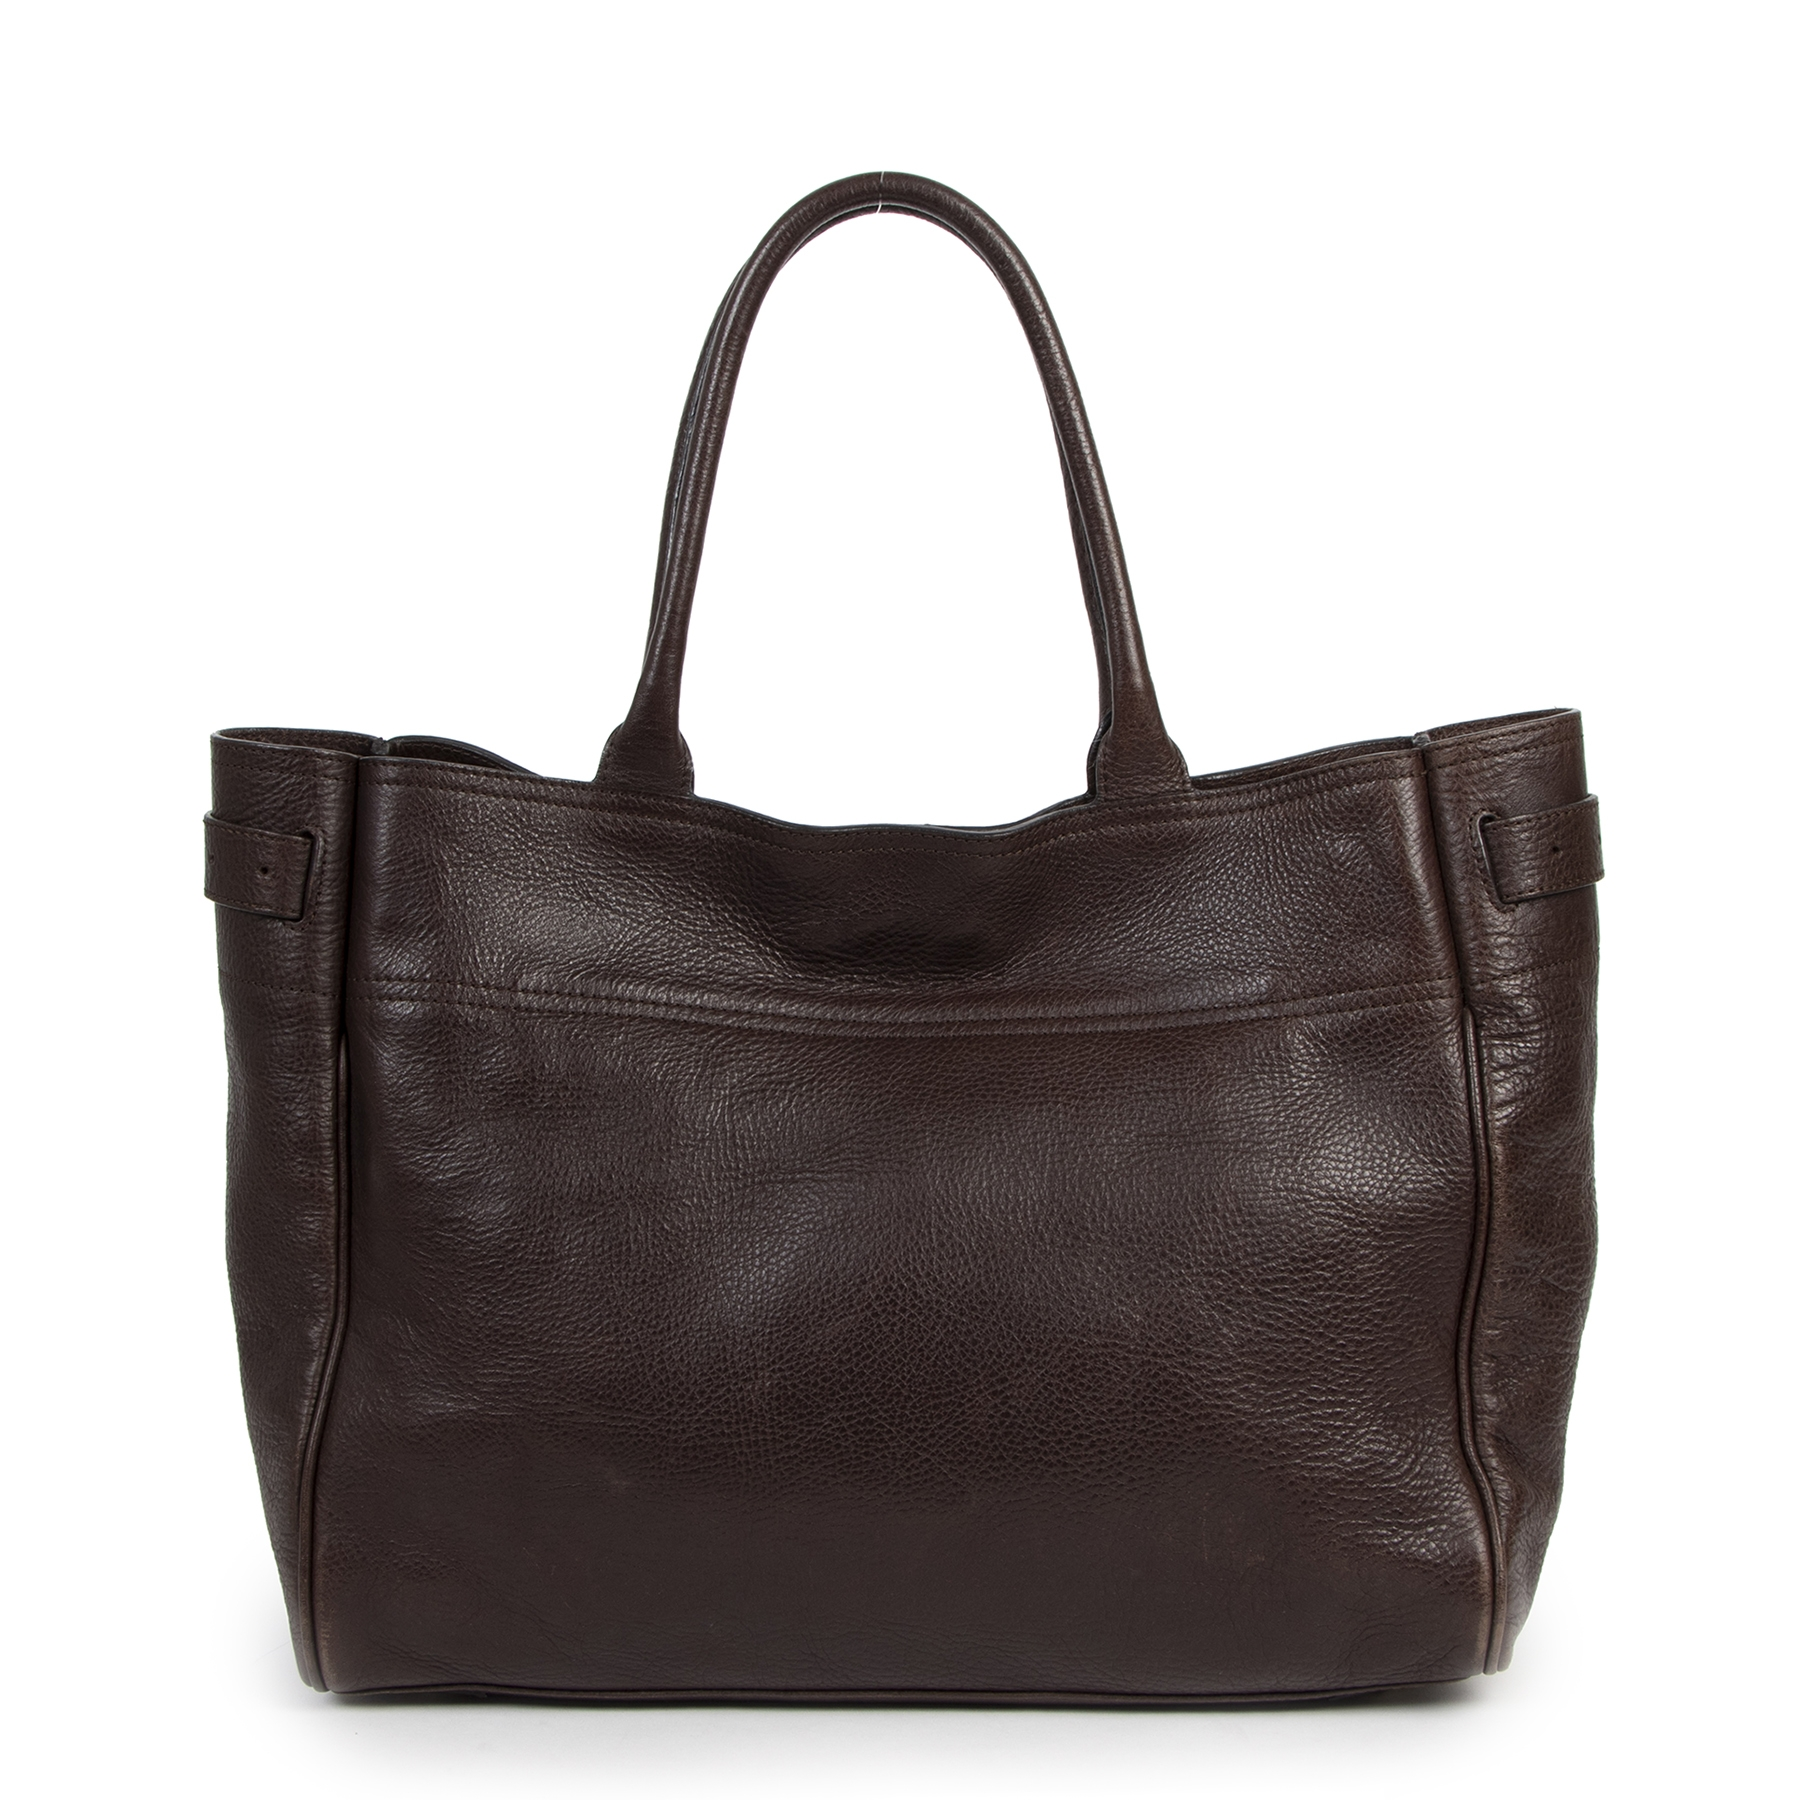 Authentic secondhand Mulberry Dark Brown Bayswater Tote Bag designer bags luxury vintage webshop fashion online shopping